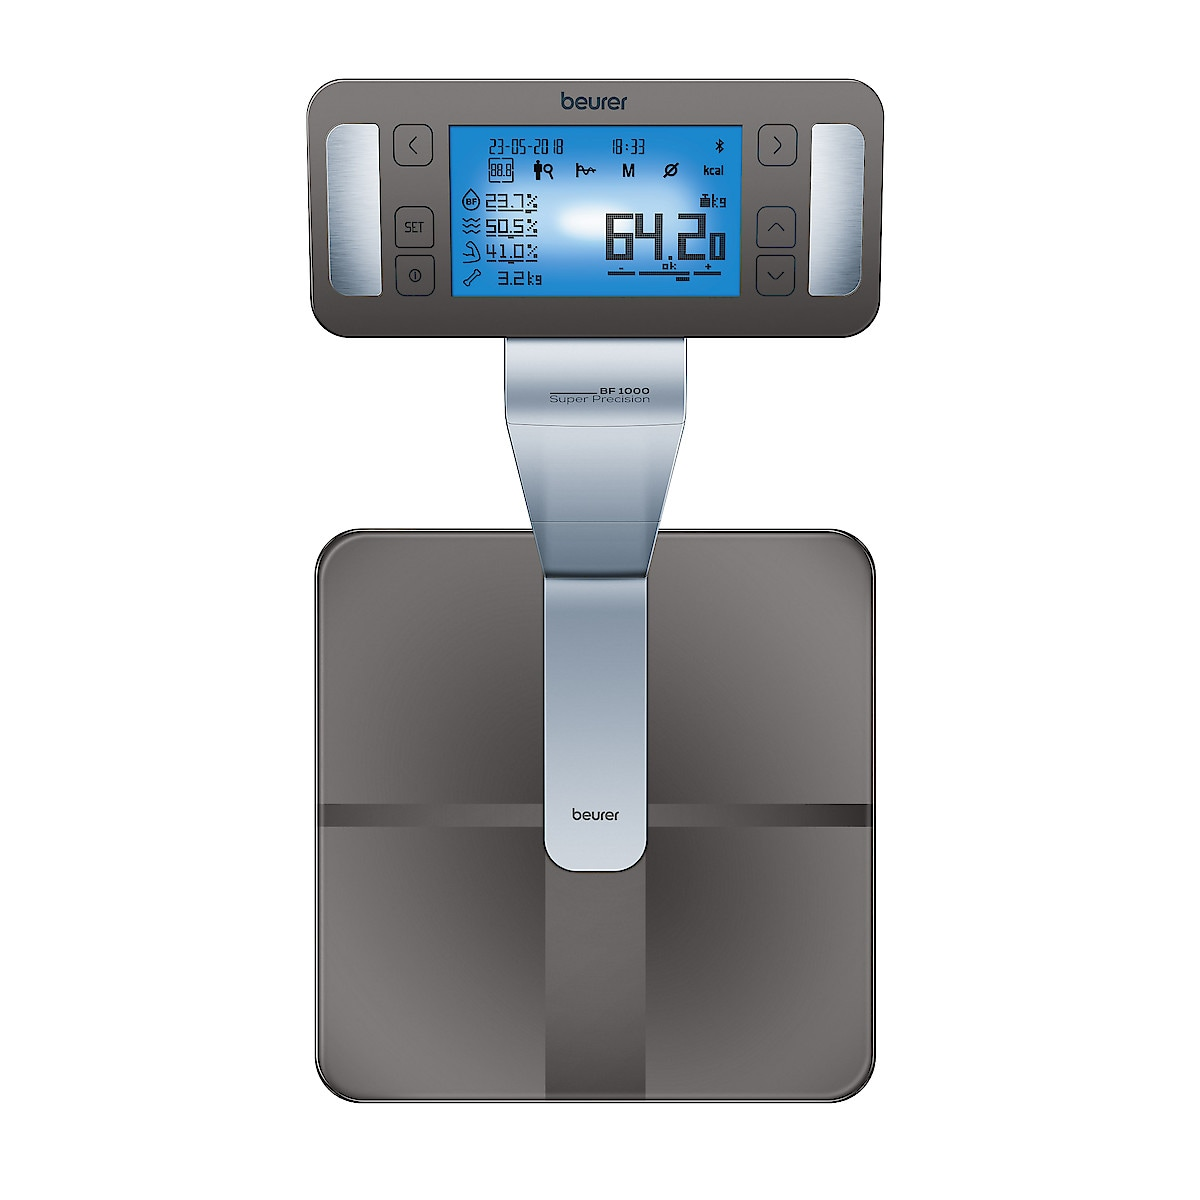 BMI Beurer BF 1000 Super Precision Bathroom Scale